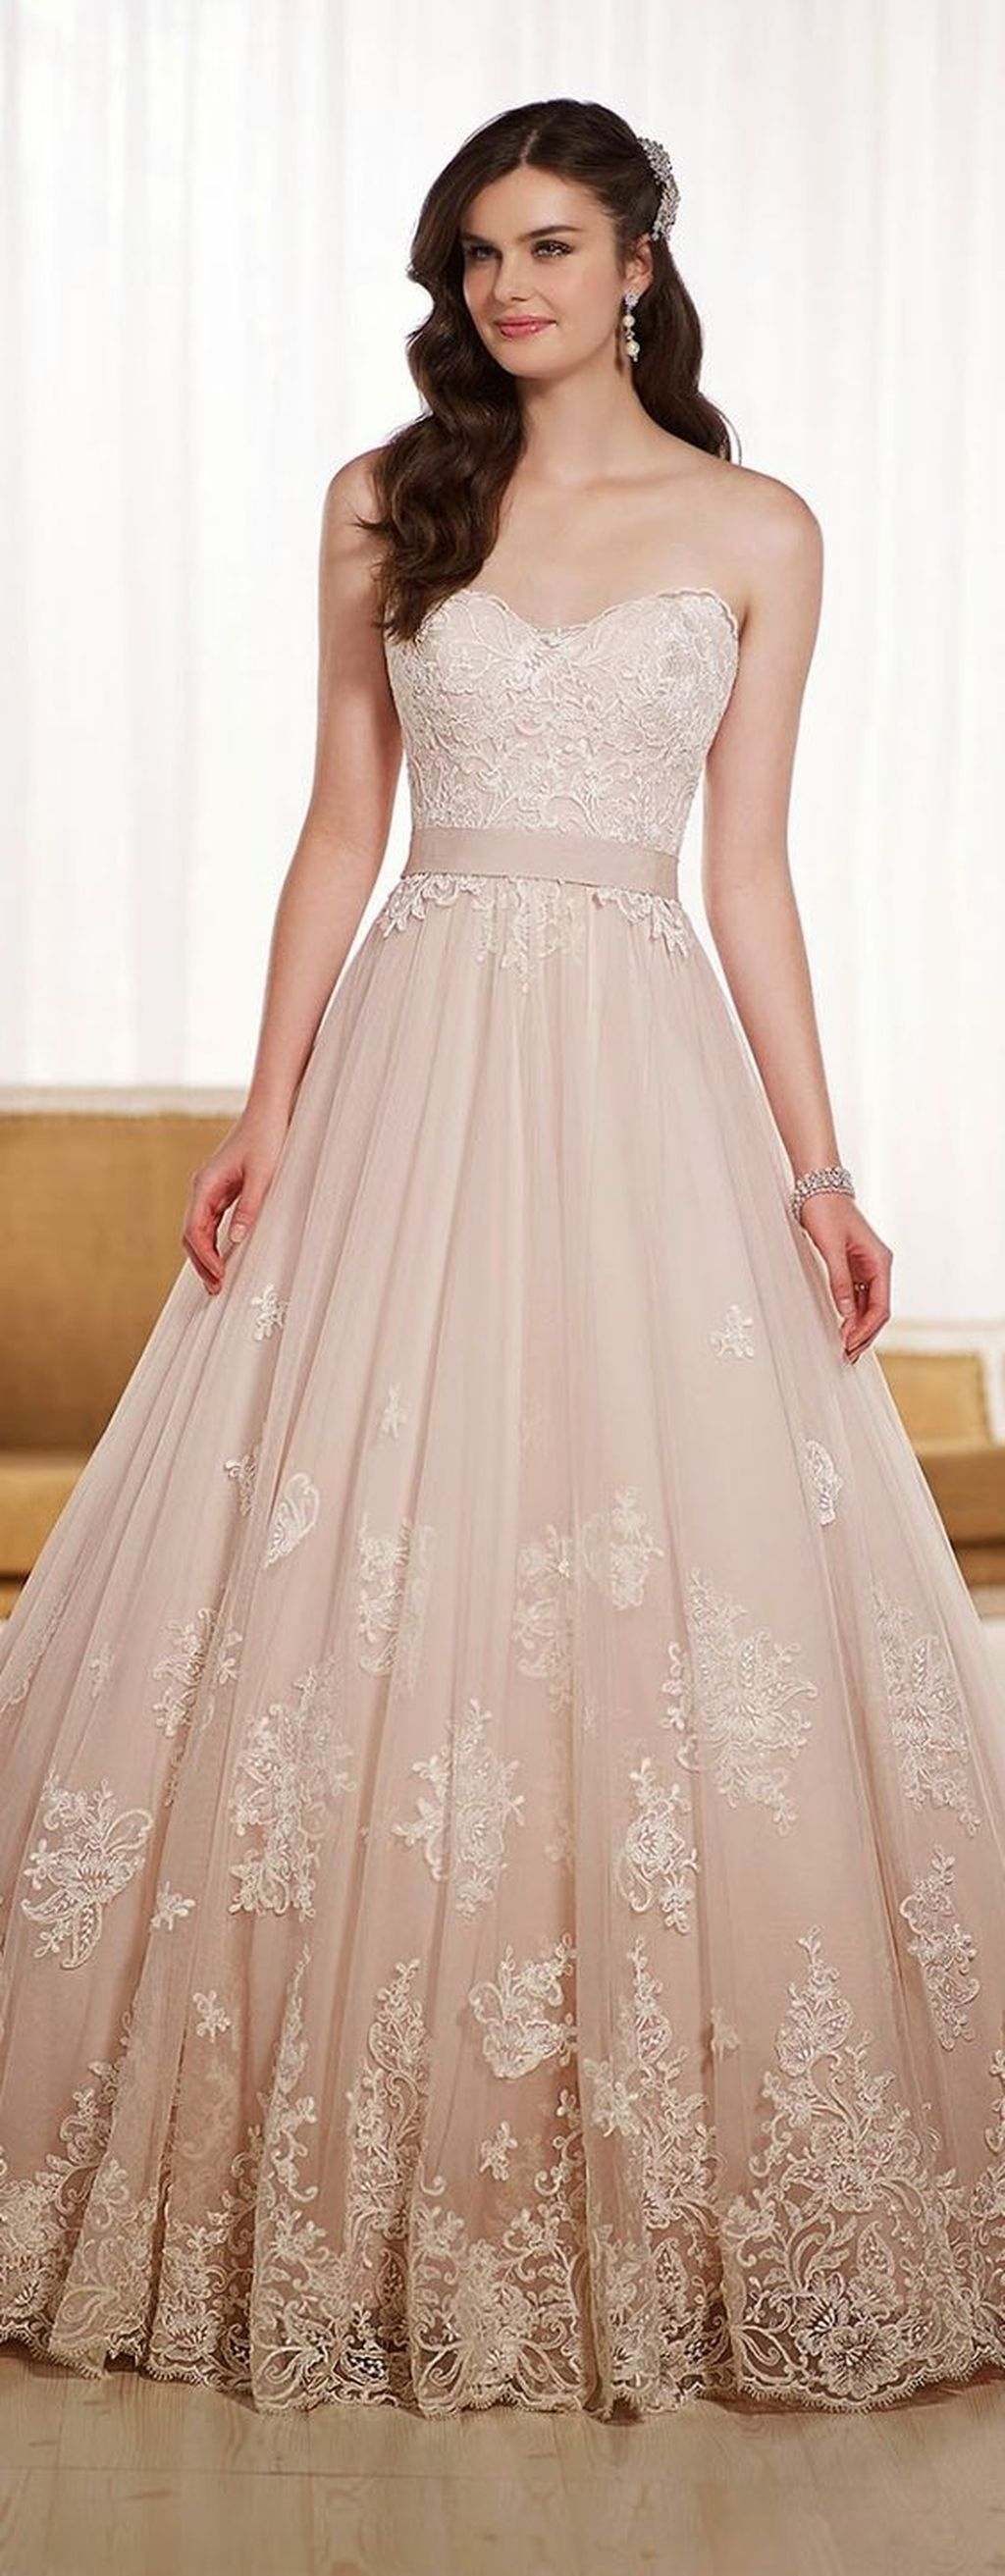 Nice simple but romantic non traditional wedding dress ideas